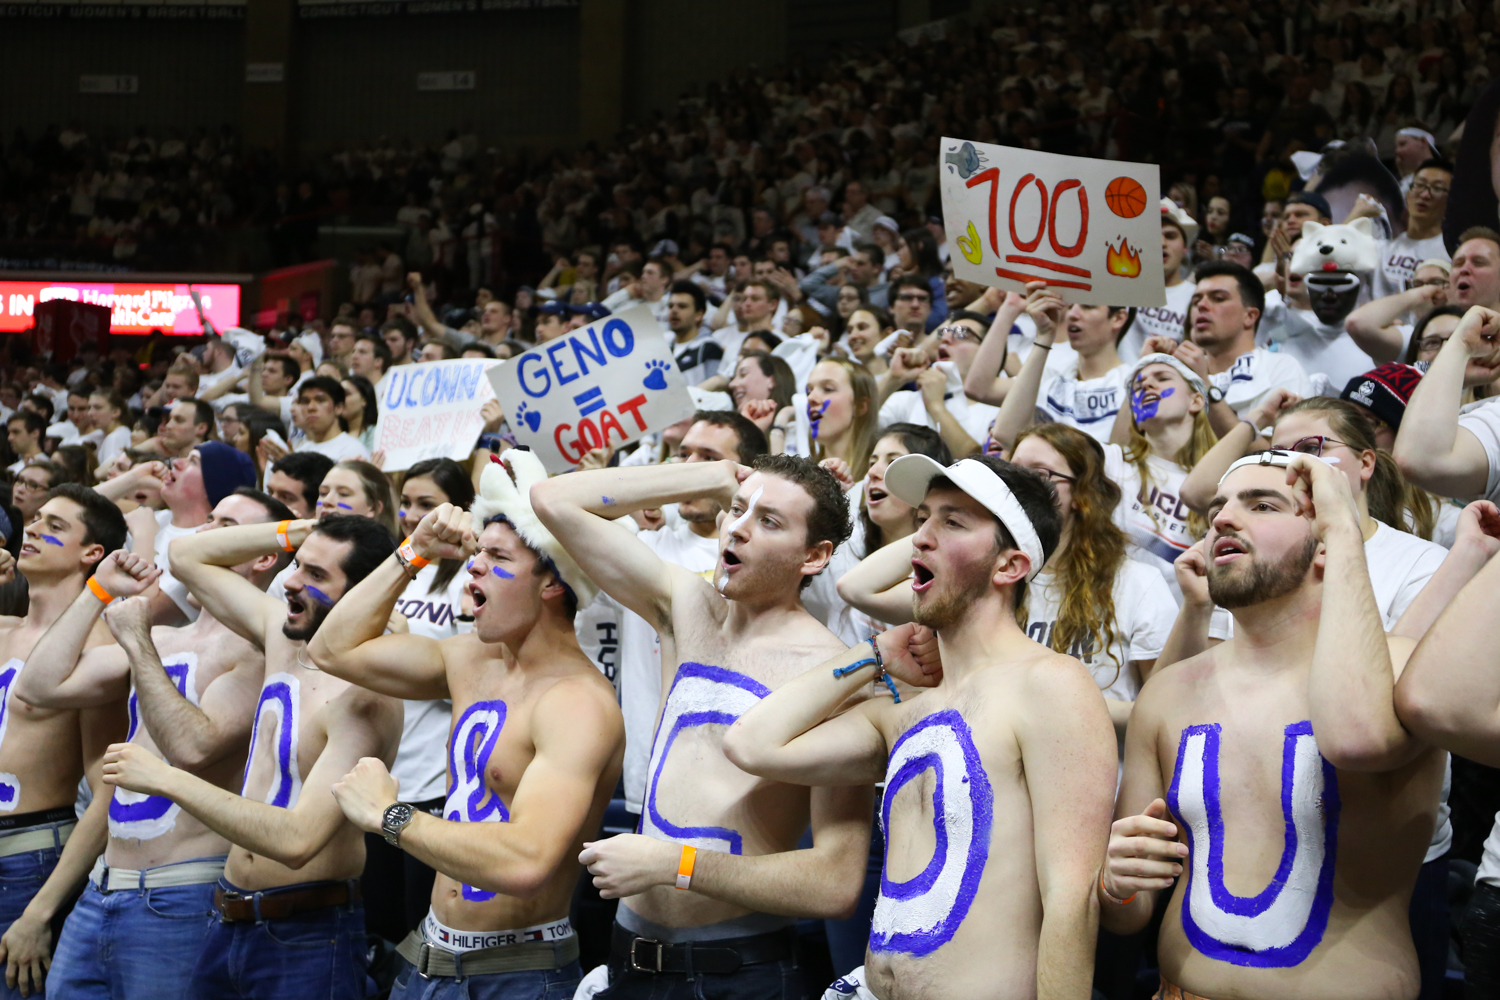 Geno Keeps It 100: Huskies win their 100th straight game.